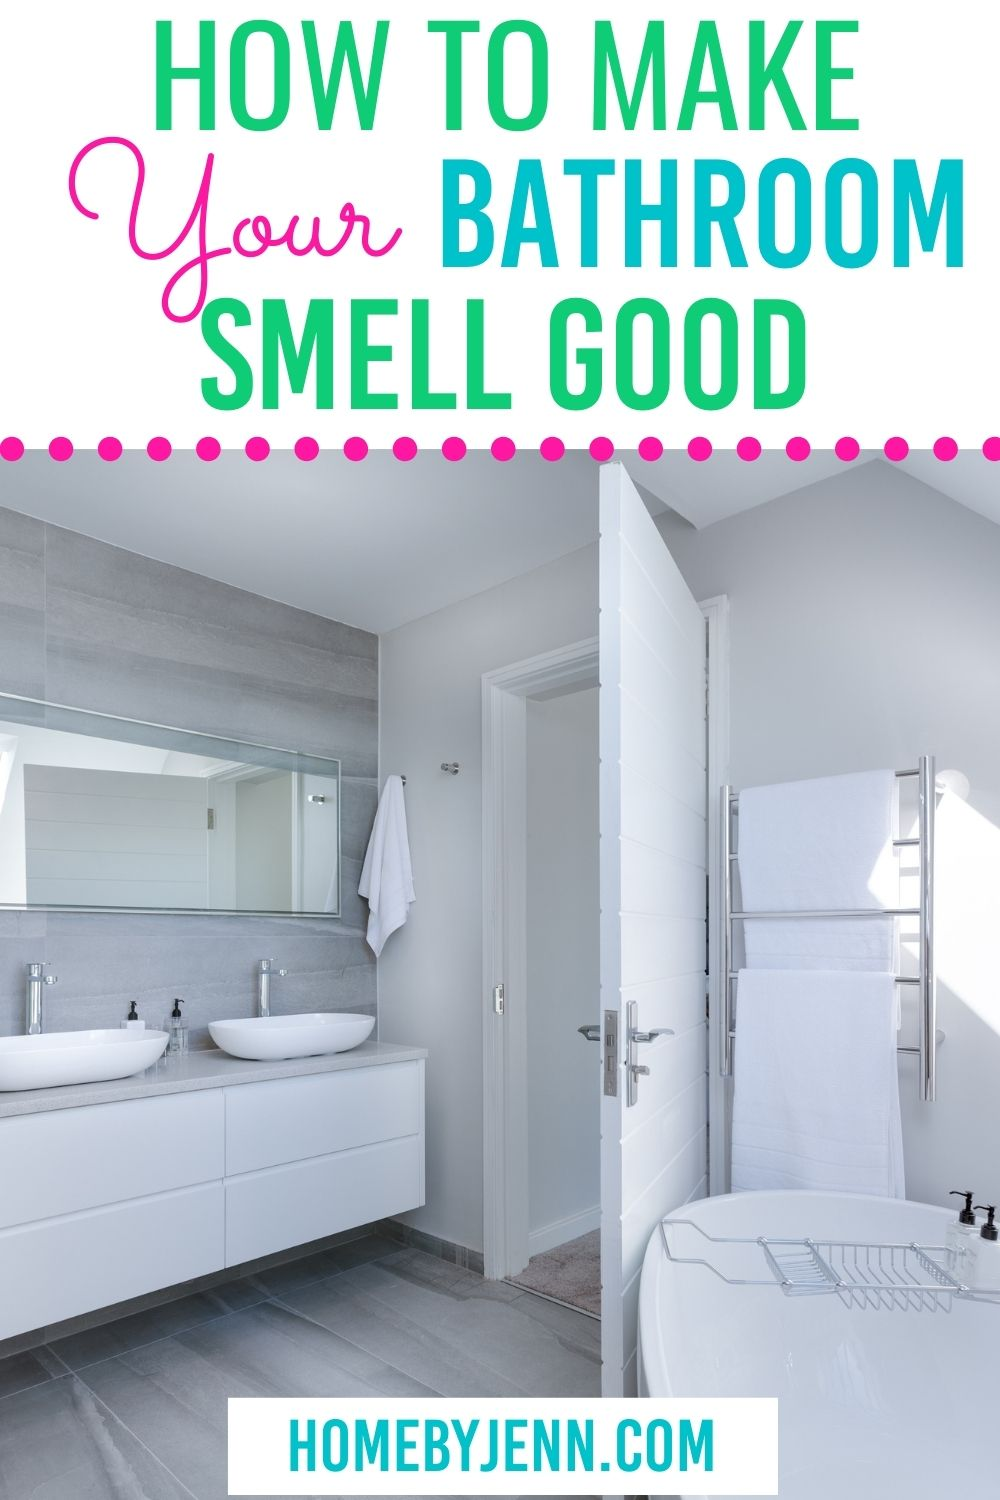 Learn how to make your bathroom smell good. There are simple and natural things you can do to keep your bathroom smelling fresh and clean. These simple tips will keep your bathroom smelling good. via @homebyjenn